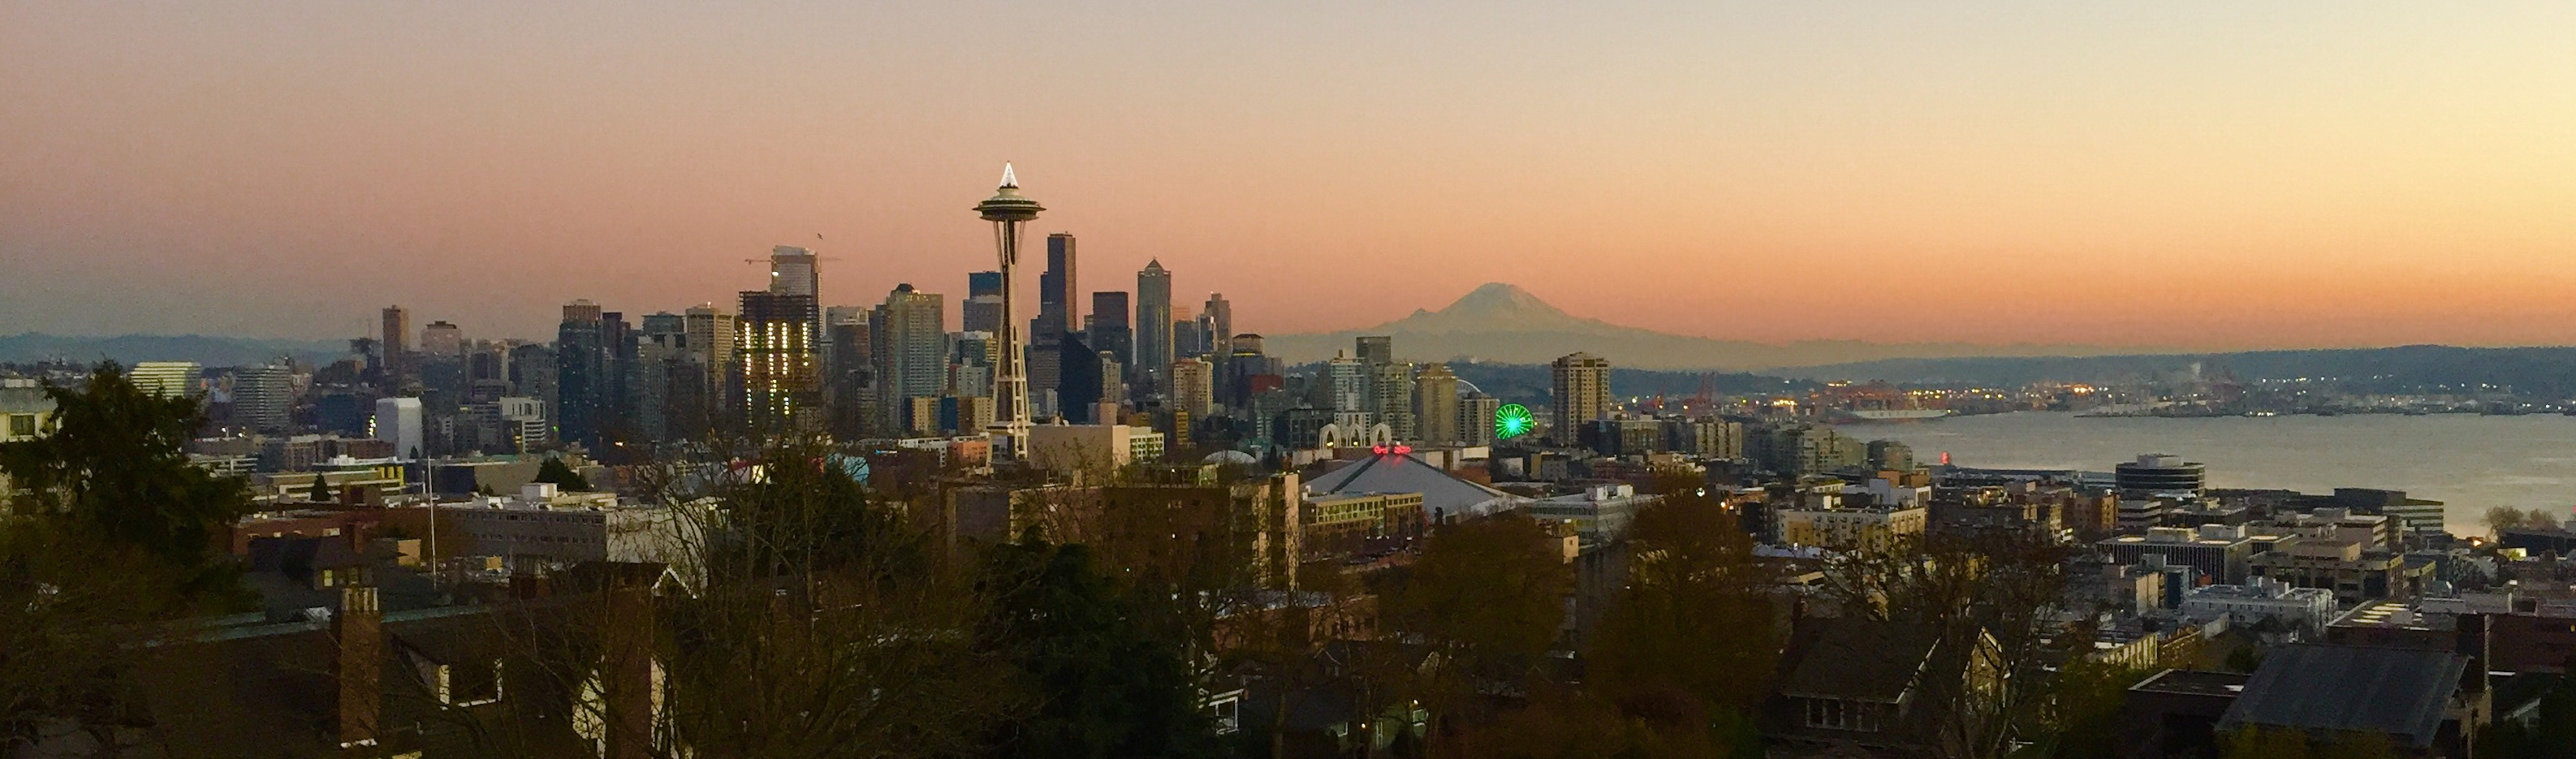 Sunrise at Kerry Park: Cynthia Strong